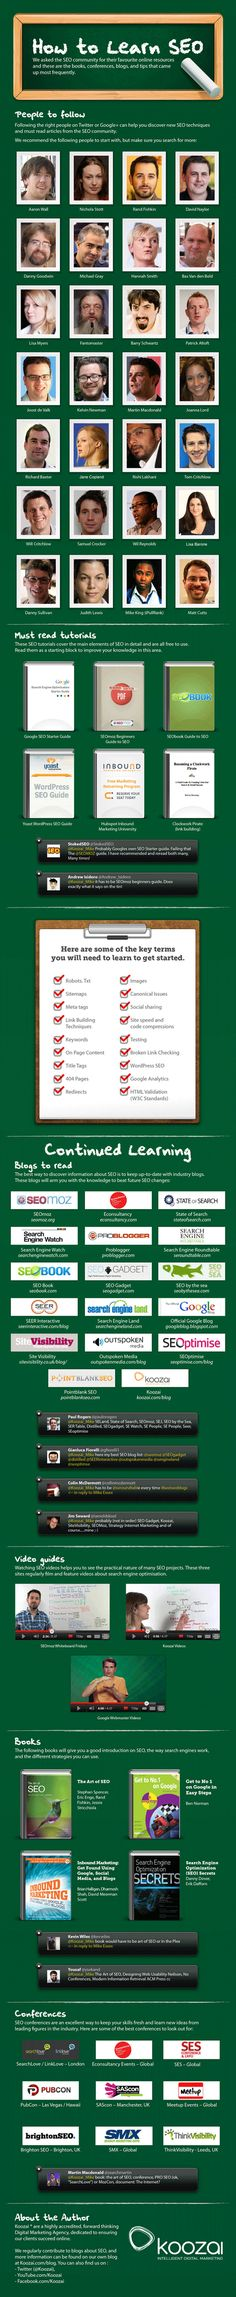 Learning SEO: Tips, Trends, Blogs, Sources  #SEO #tips